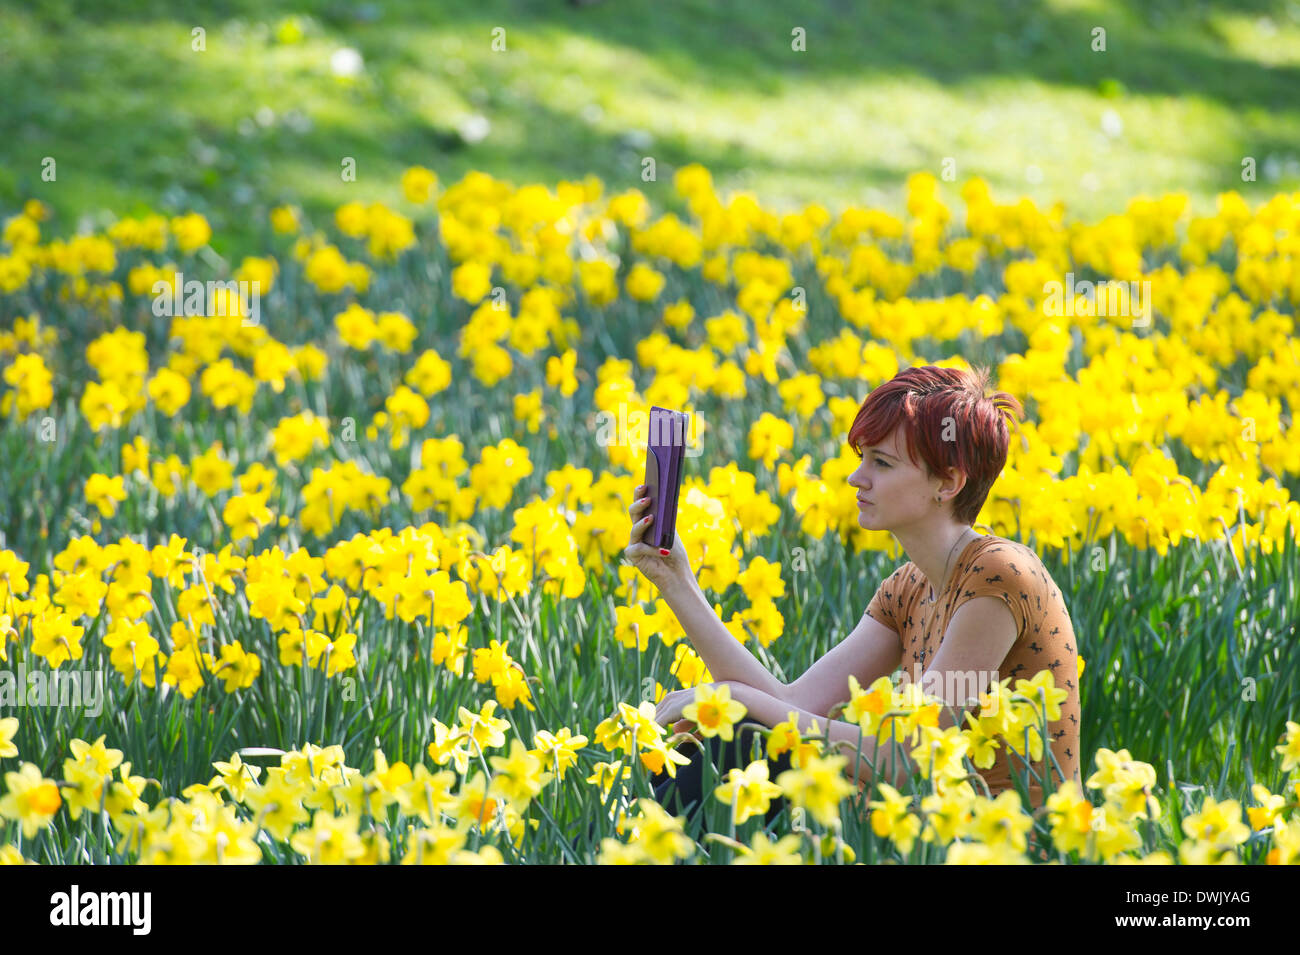 A girl reads an Ebook in the countryside surrounded by daffodils - Stock Image